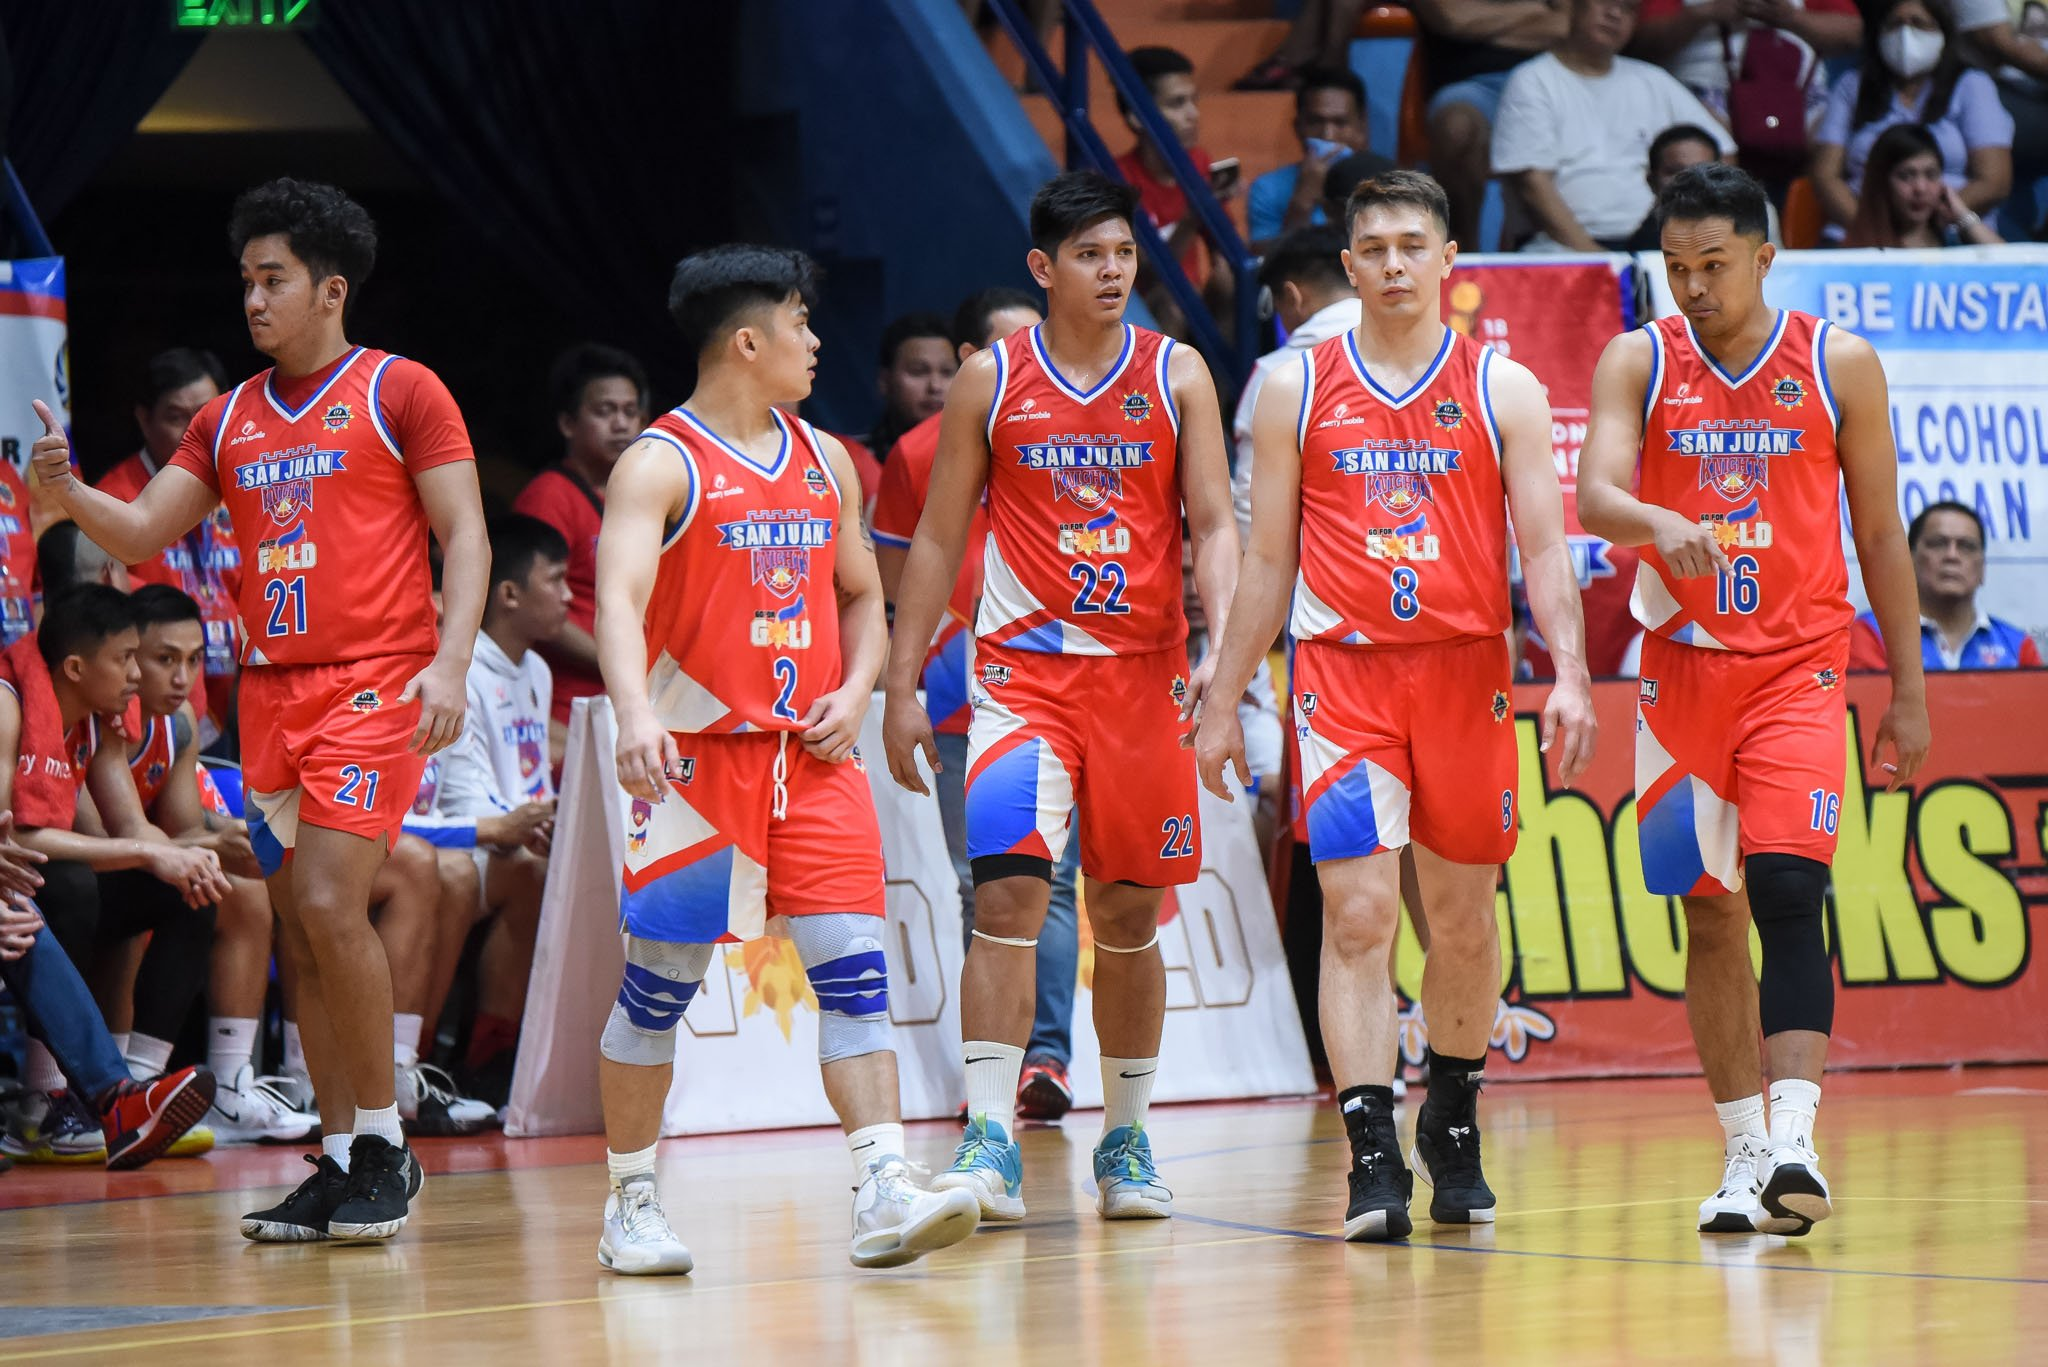 Tiebreaker Times MPBL to jump ship after non-renewal of ABS-CBN franchise Basketball MPBL News  Strike Revilla Onyx Crisologo Manny Pacquiao Jonathan Sy Alvarado Eric Martinez Claudine Bautista ABS-CBN Sports+Action 2019-20 MPBL Lakan Cup